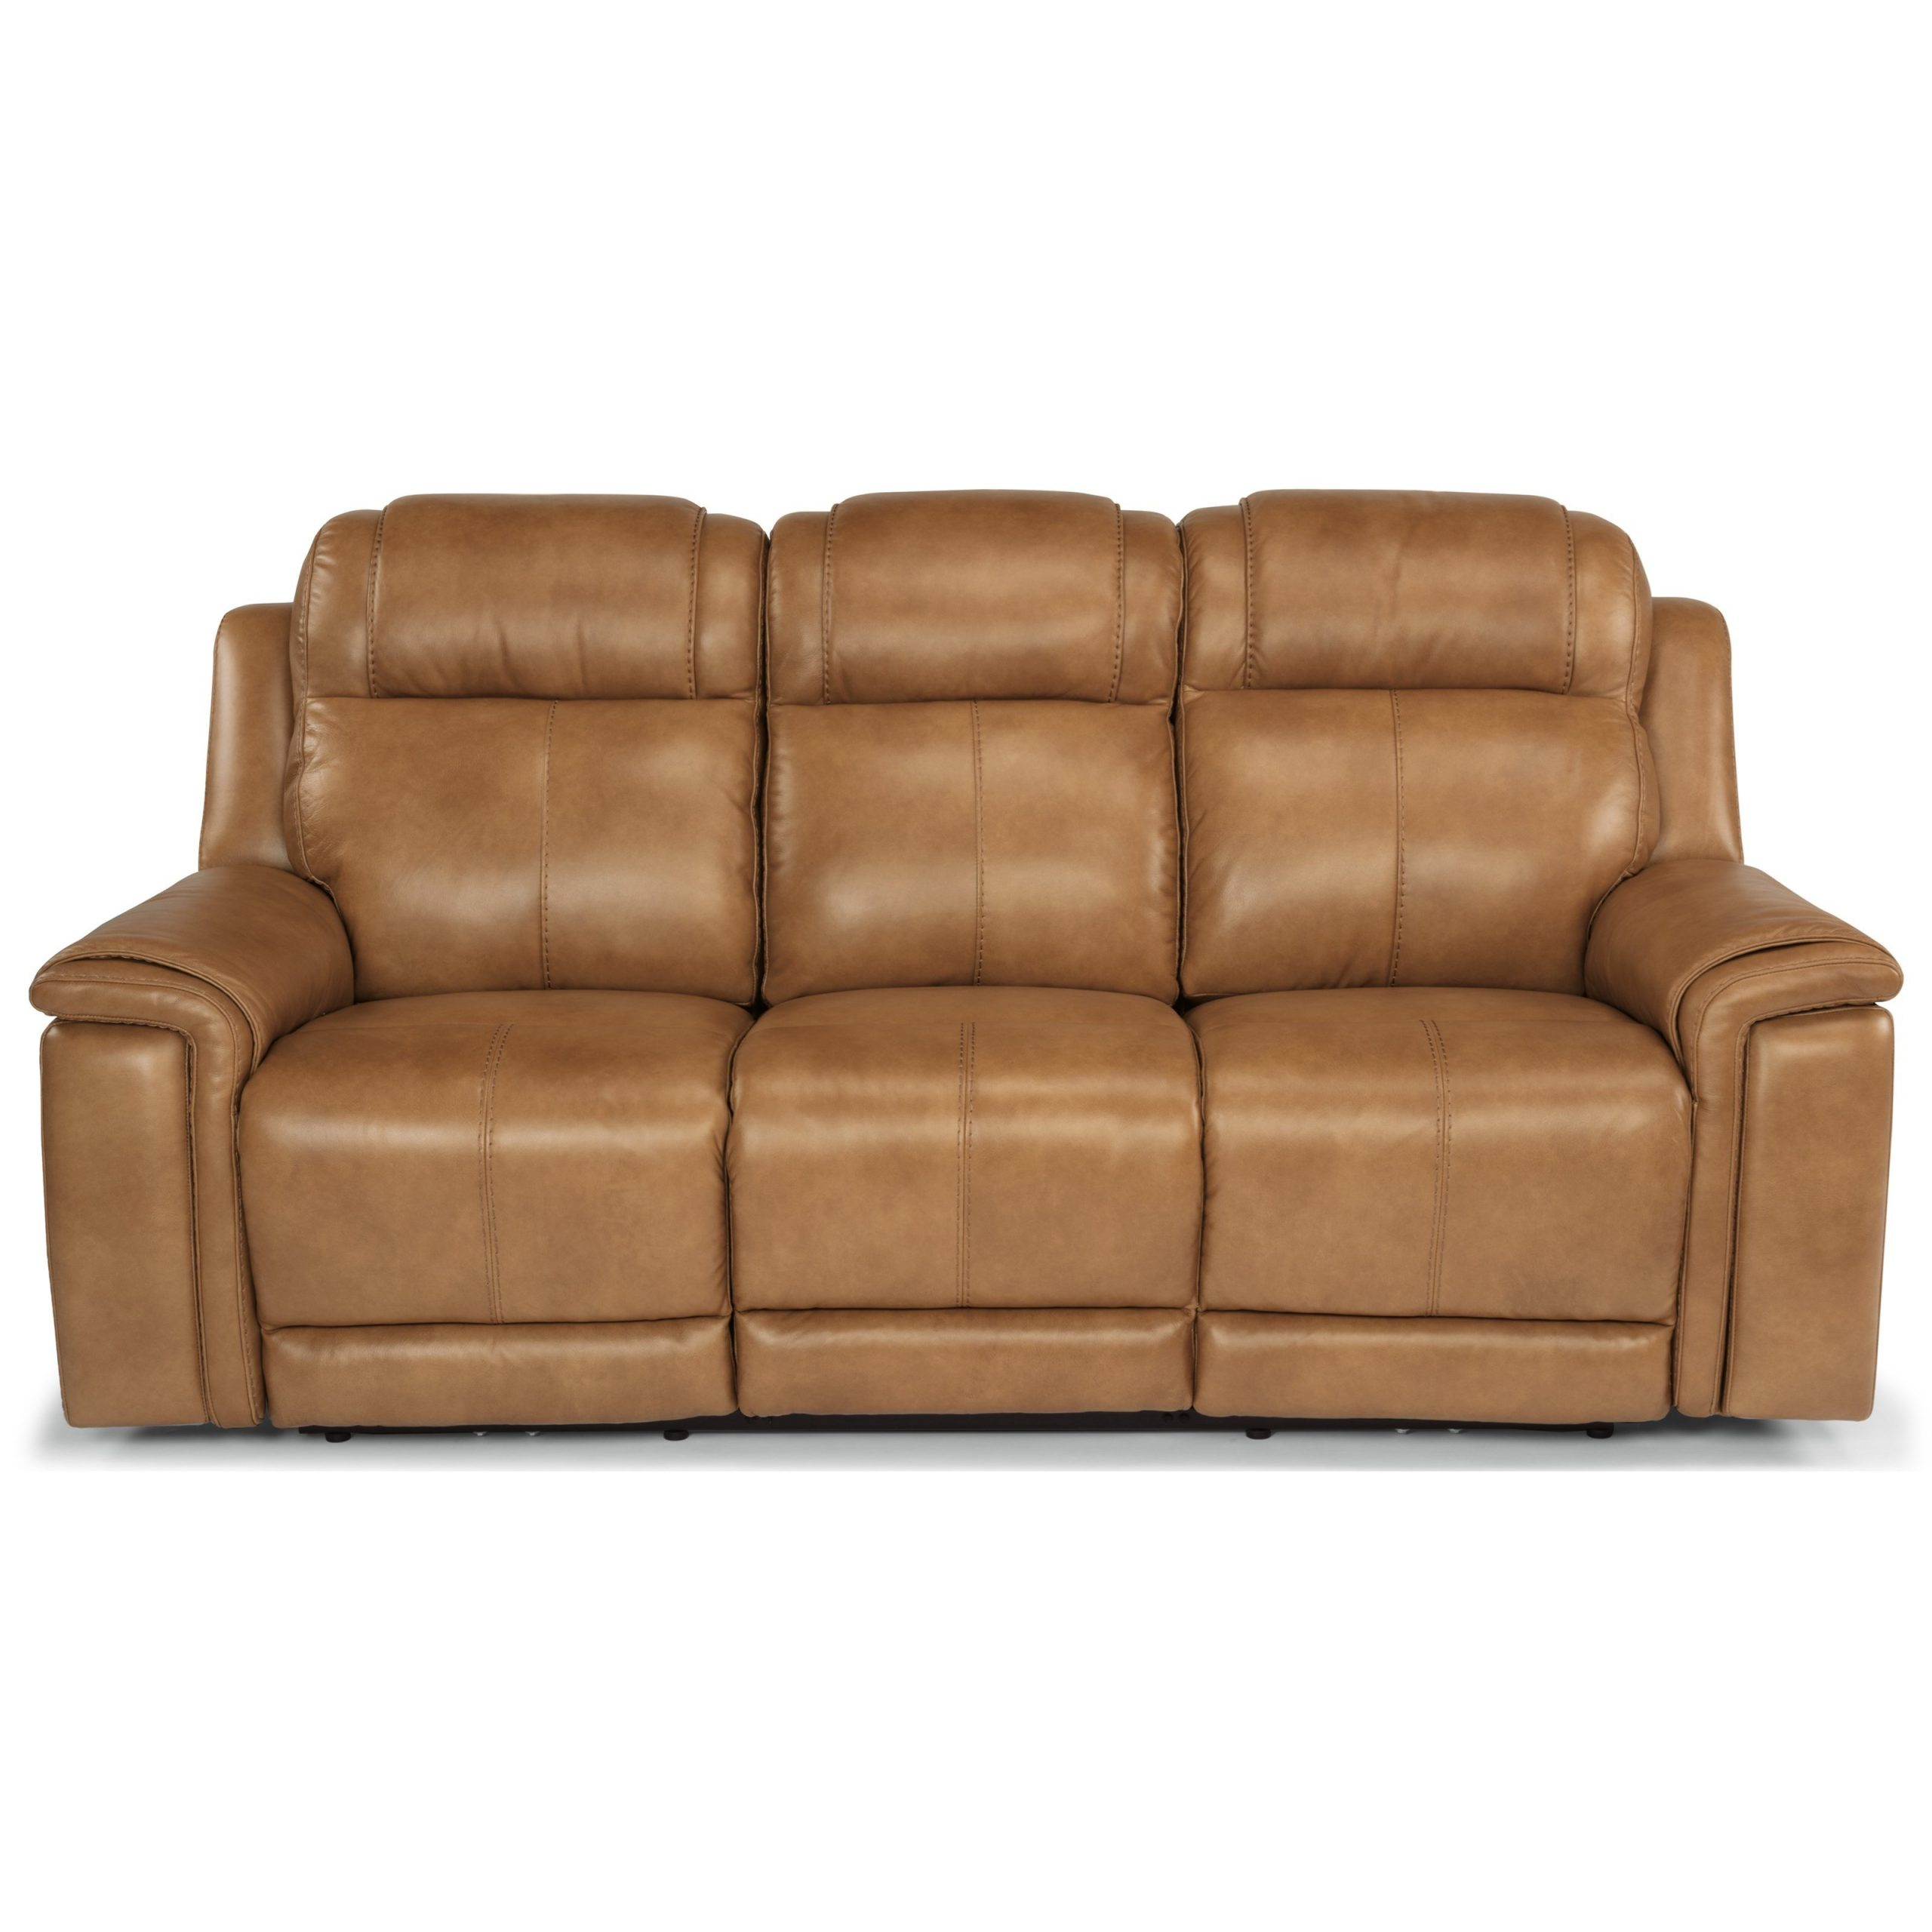 Flexsteel Latitudes – Kingsley Casual Lay Flat Power Throughout Power Reclining Sofas (View 2 of 15)